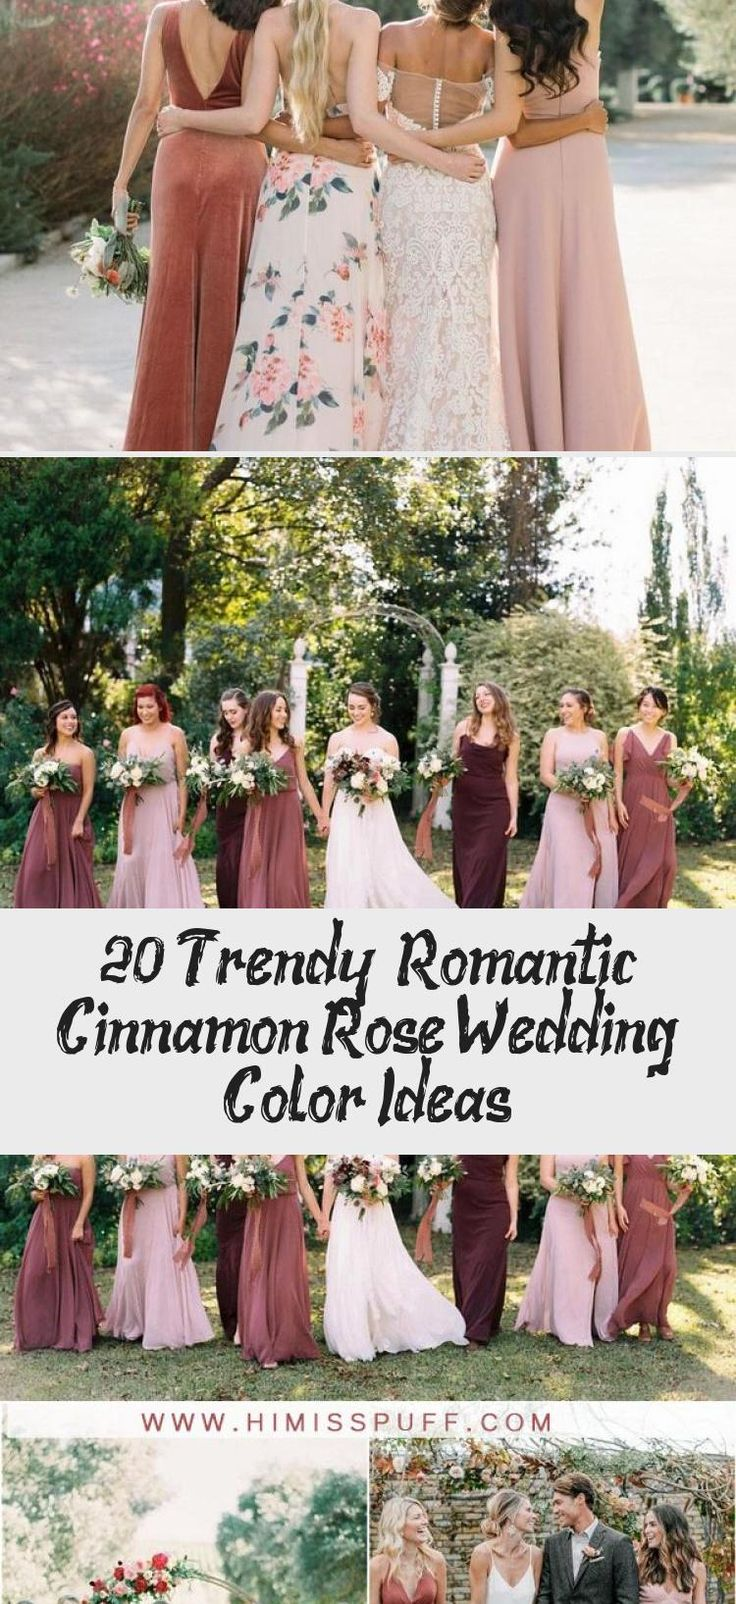 cinnamon rose dusty rose bridesmaid dresses #wedding #weddings #weddingideas #weddingcolors #weddinginspiration #himisspuff #BurgundyBridesmaidDresses #BridesmaidDressesFall #CheapBridesmaidDresses #PinkBridesmaidDresses #BridesmaidDressesMismatched